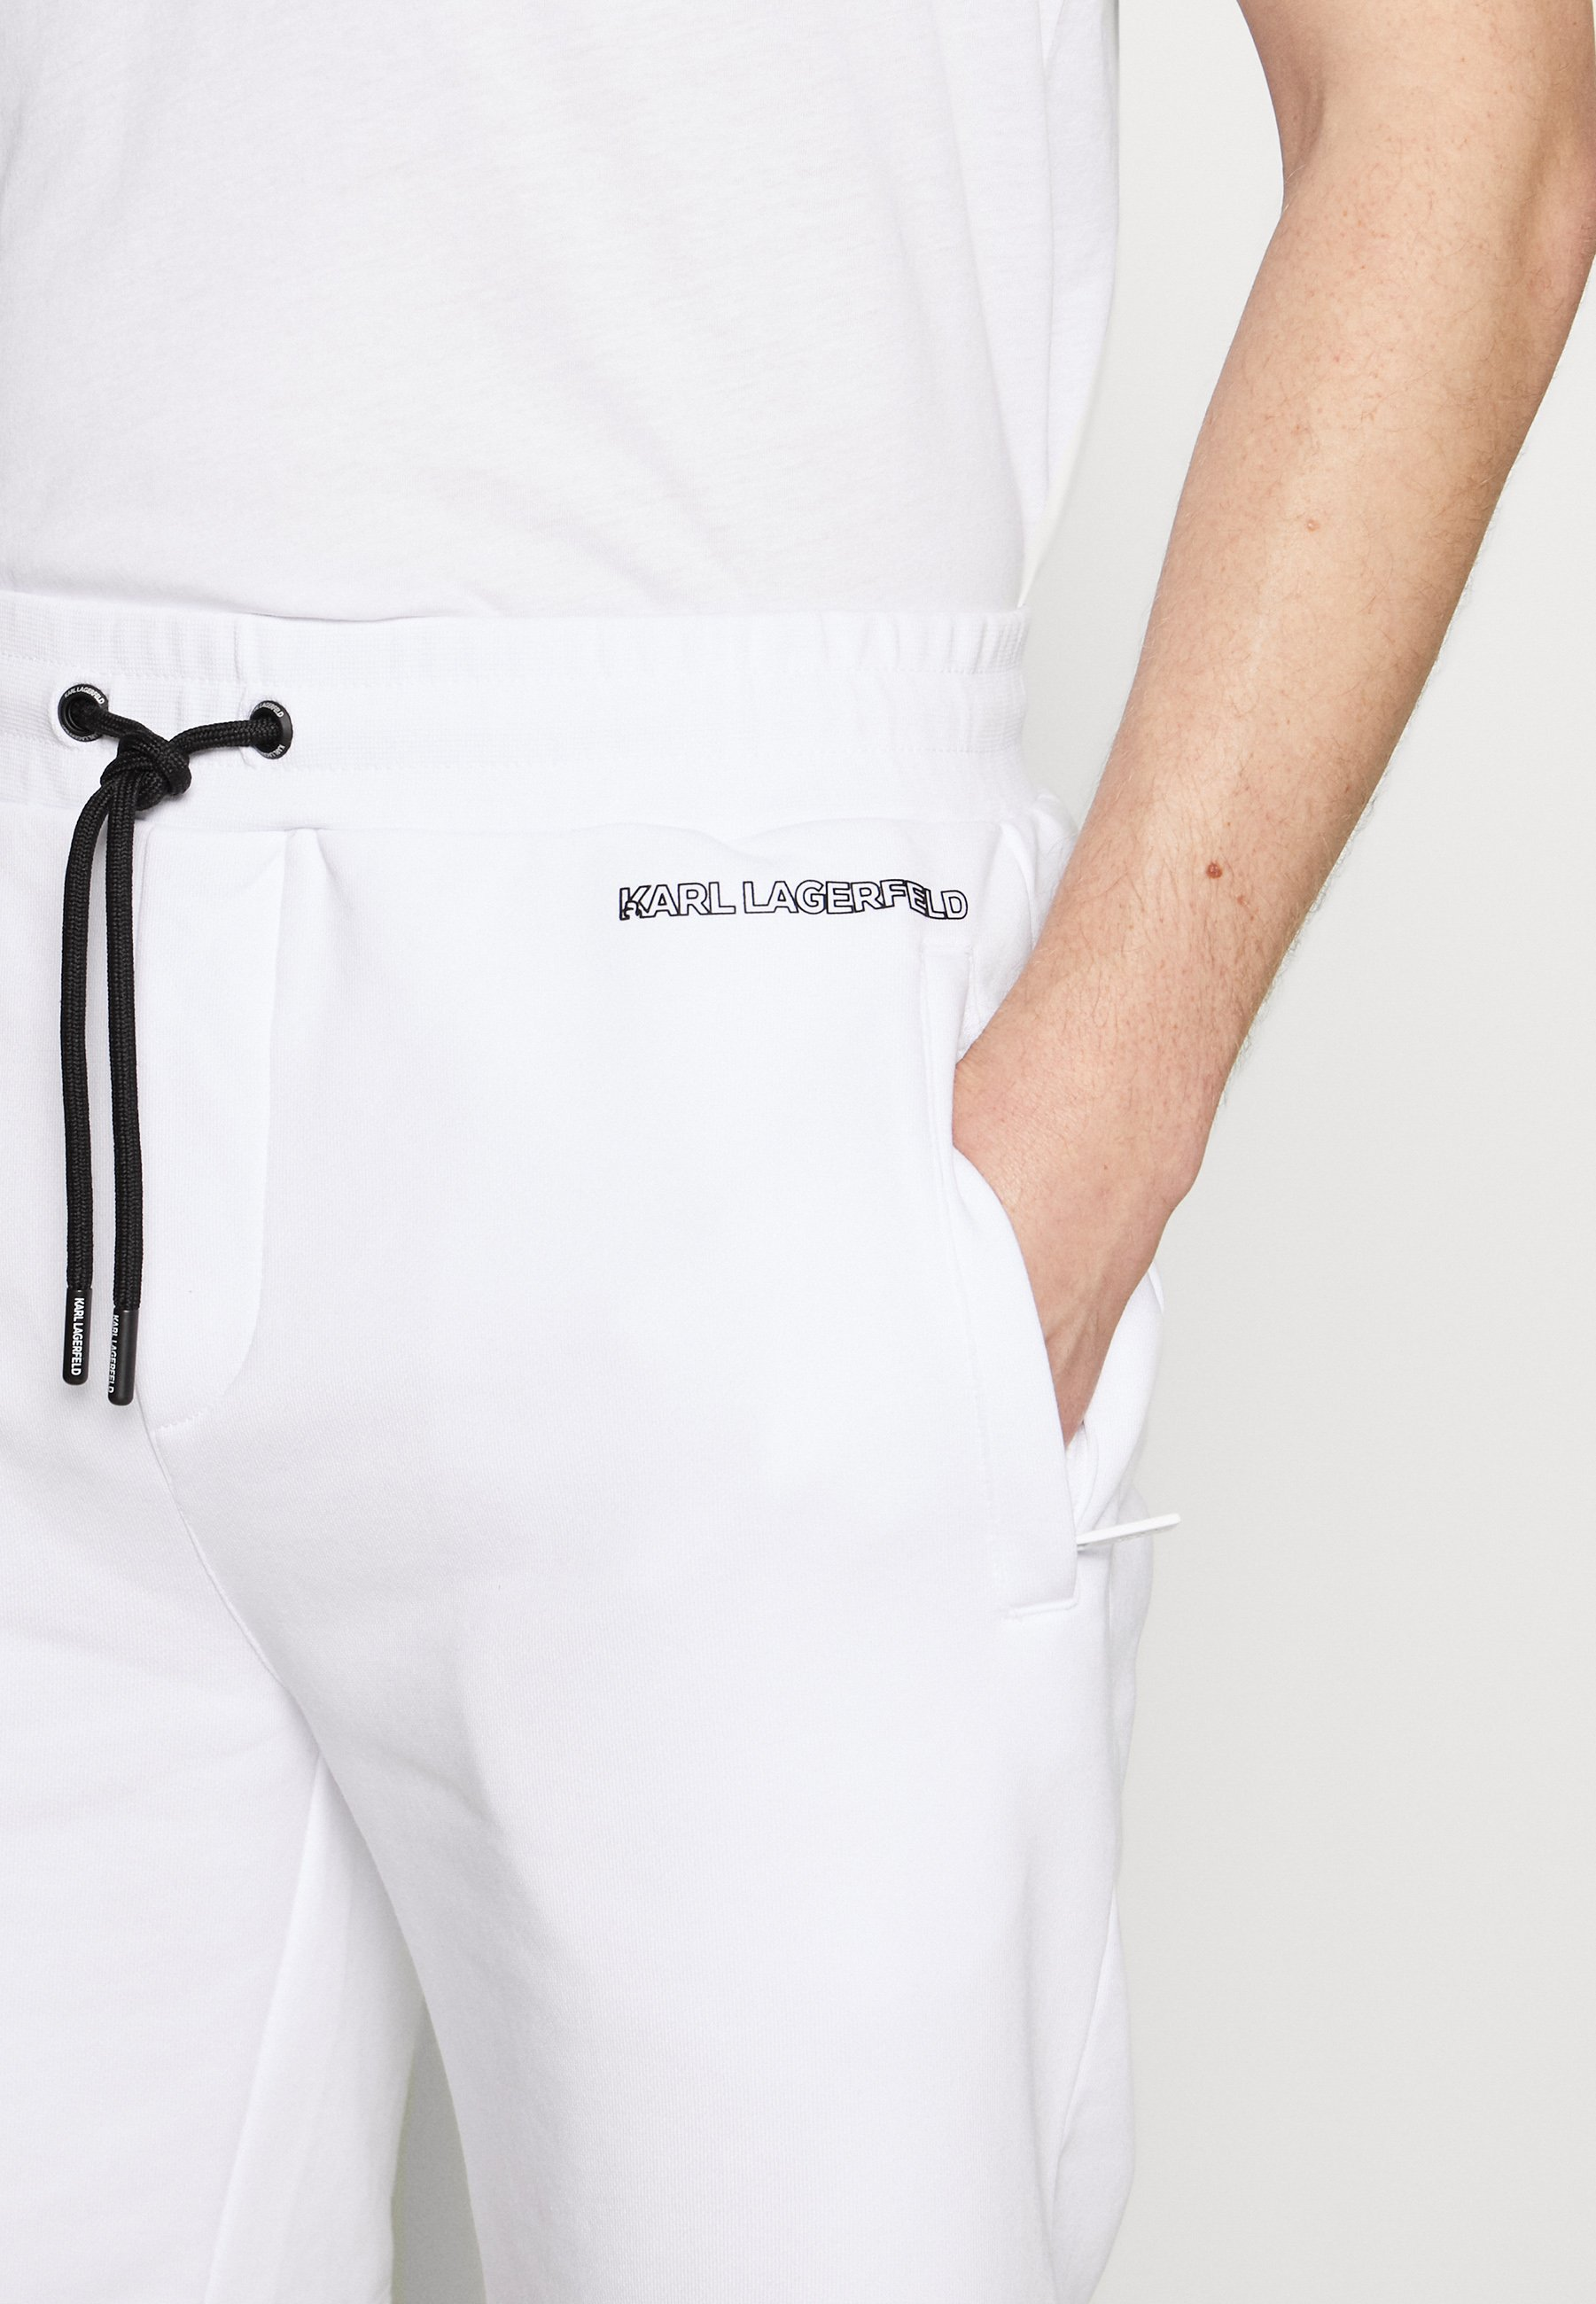 Karl Lagerfeld Shorts - White Black Friday